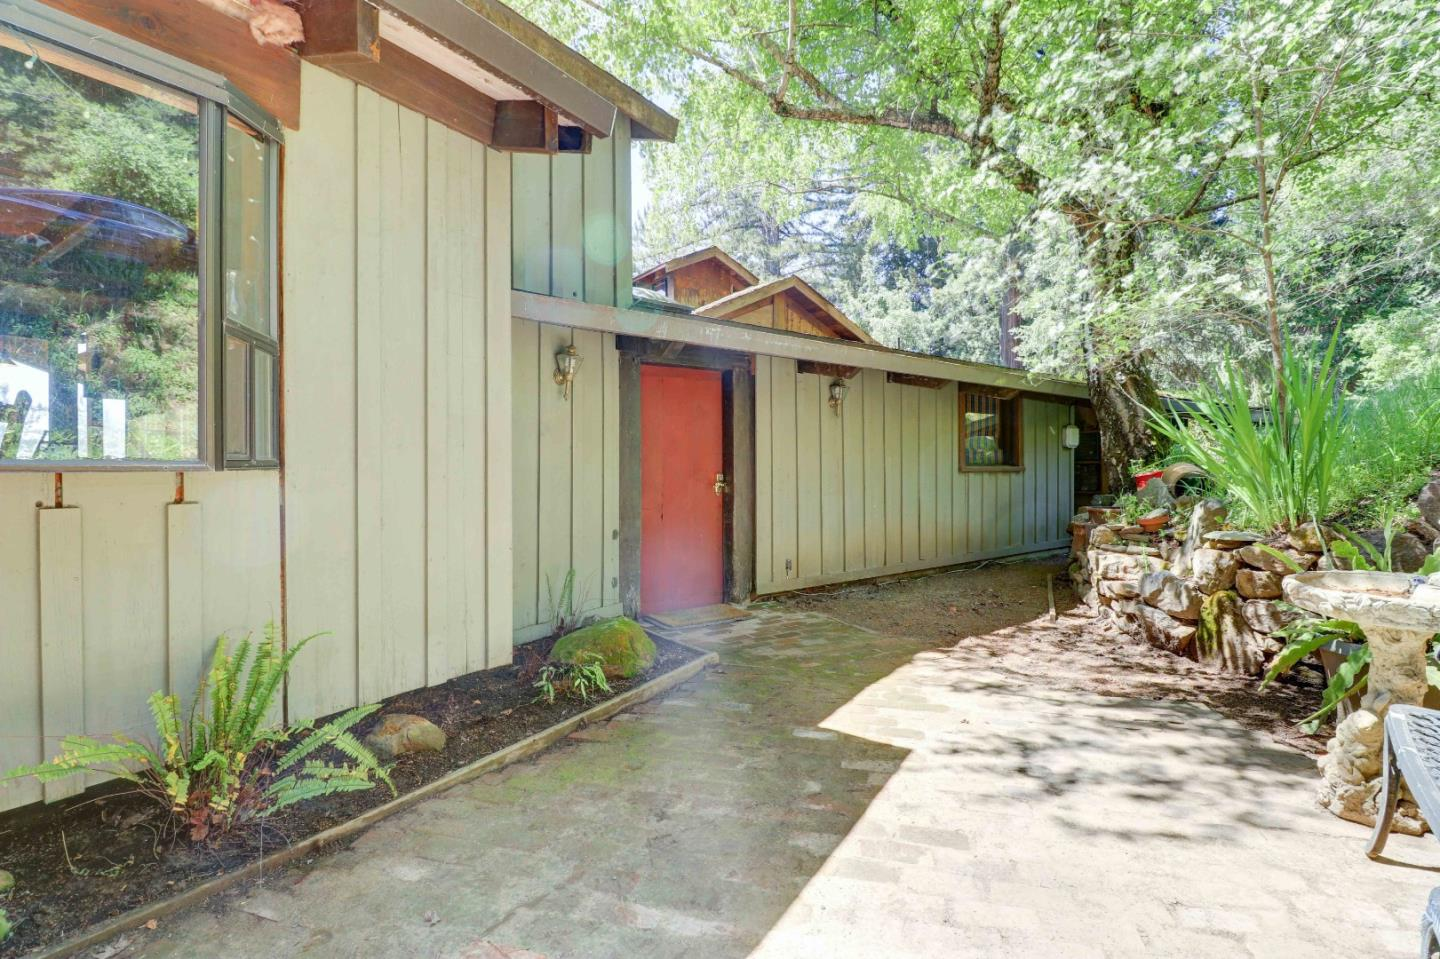 Property for sale at Stetson RD, Los Gatos,  CA 95033